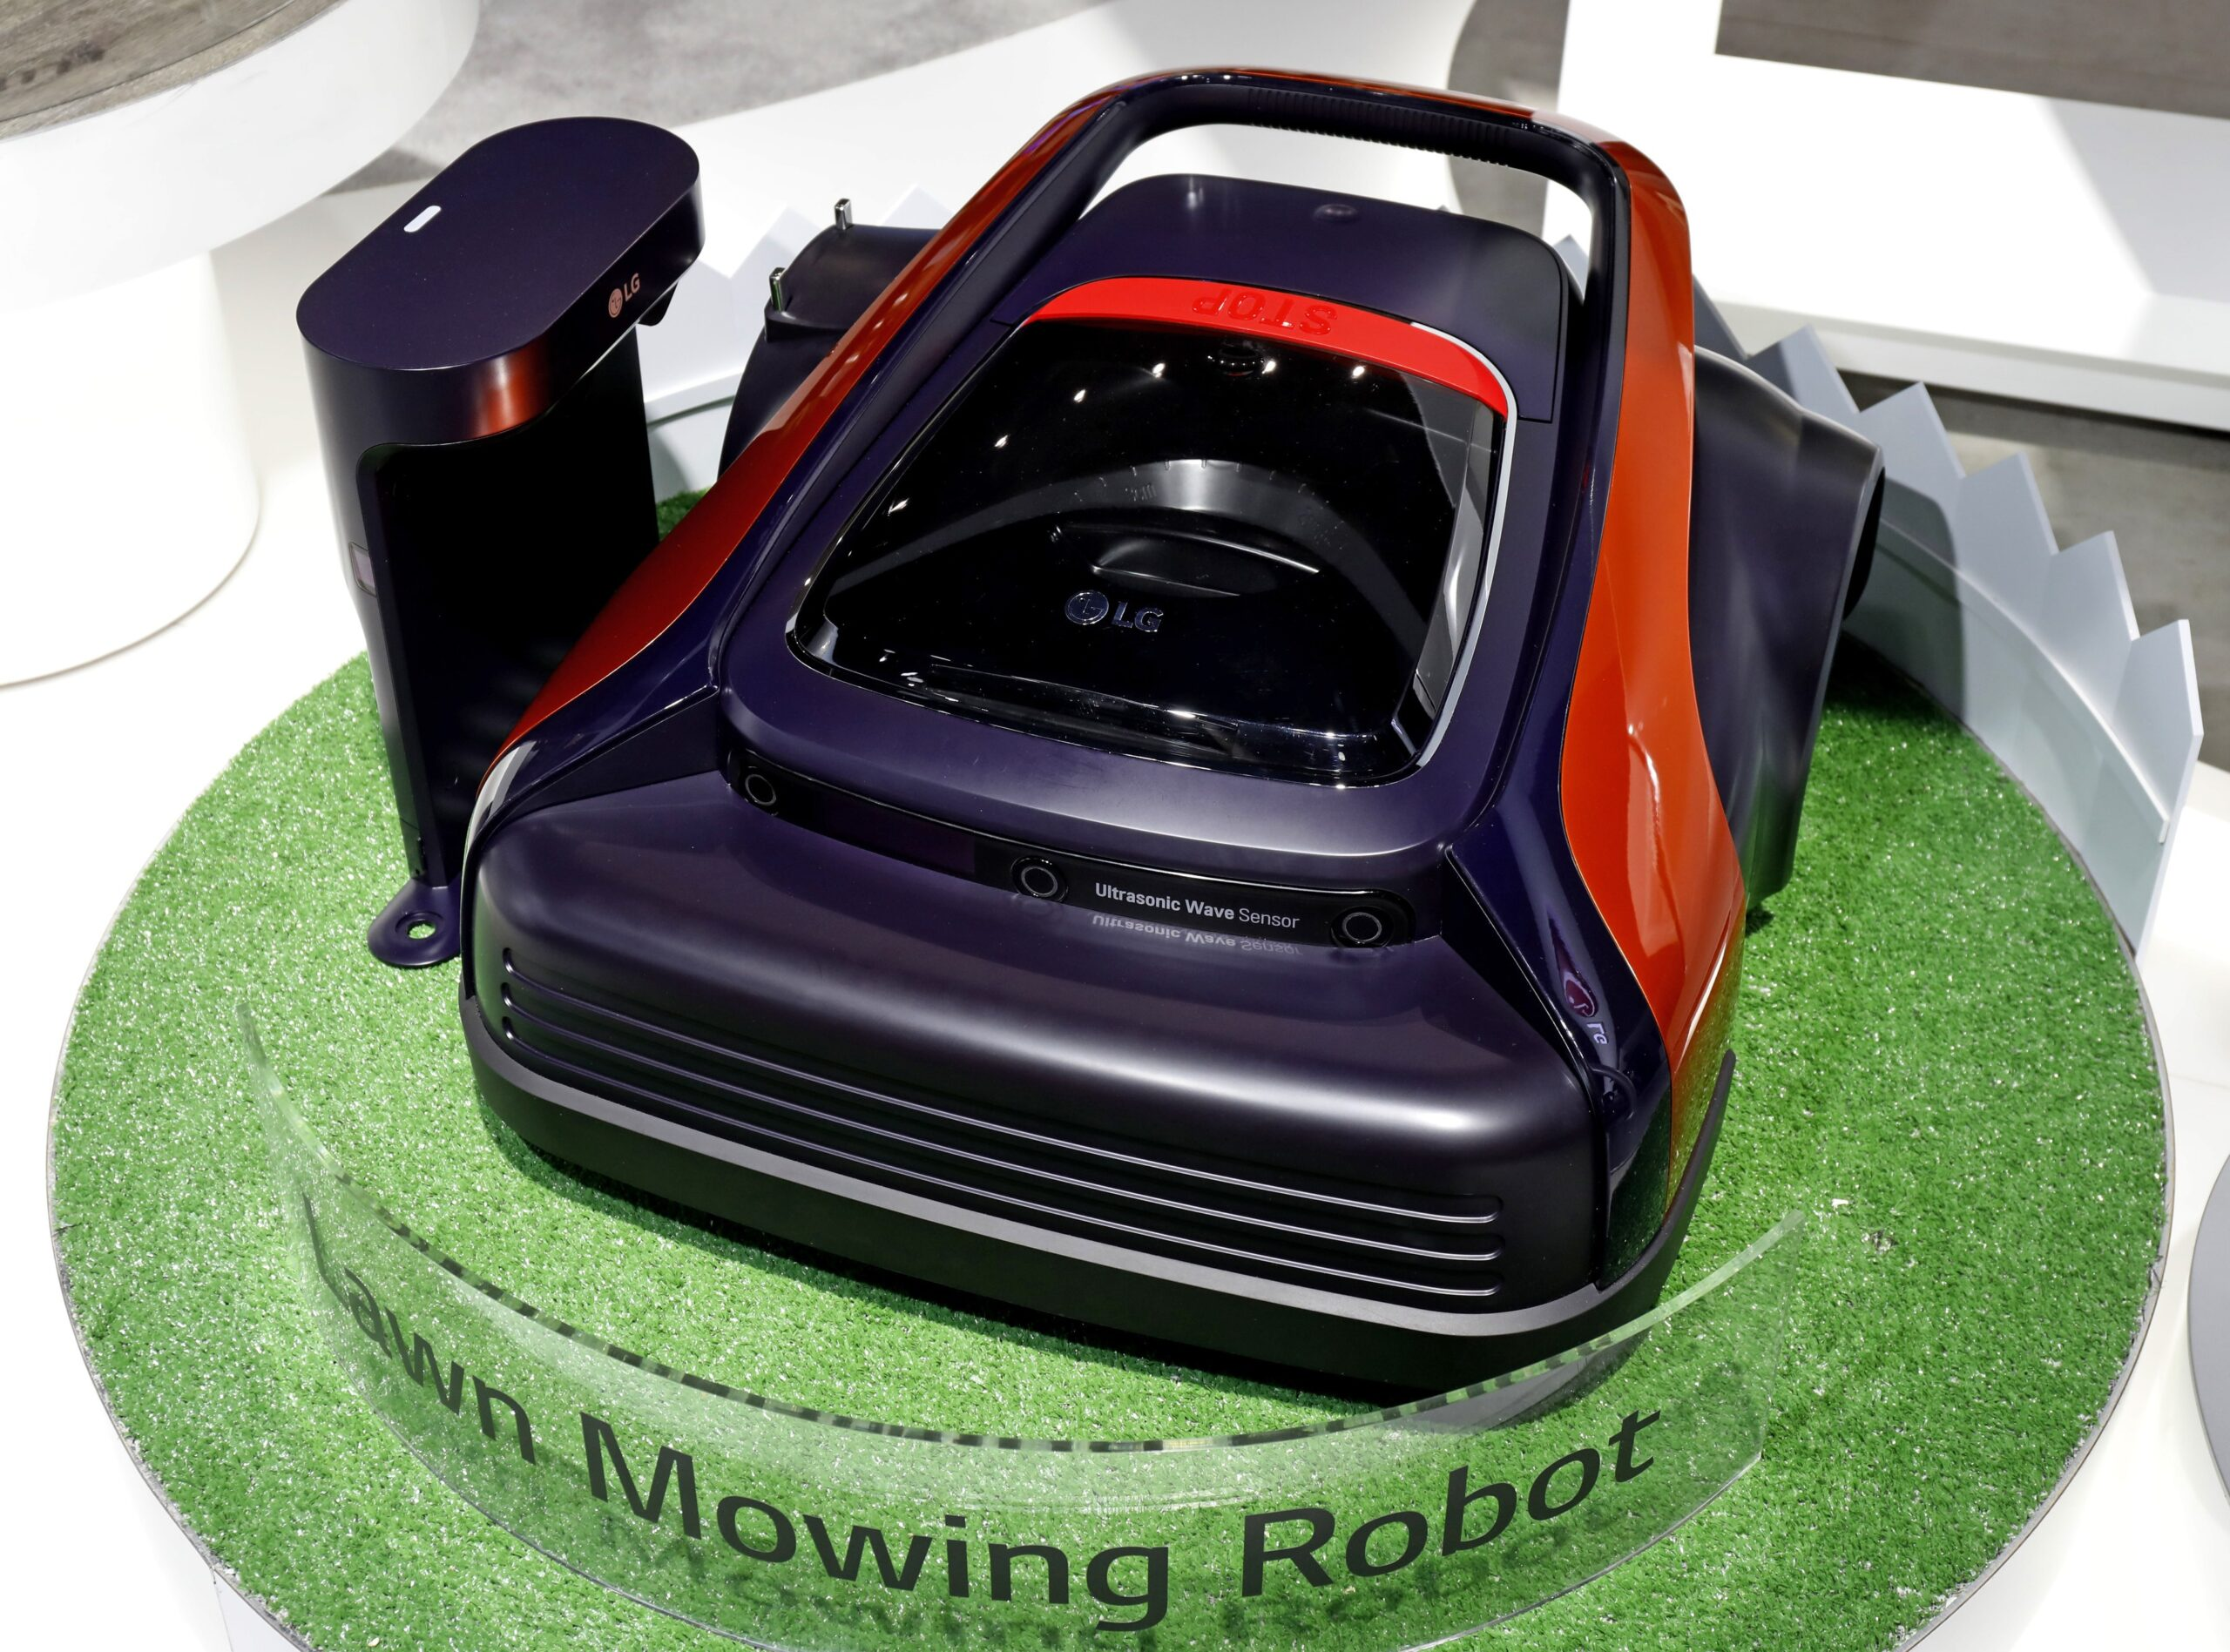 LG's Lawn Mowing Robot on display at LG's CES 2017 booth